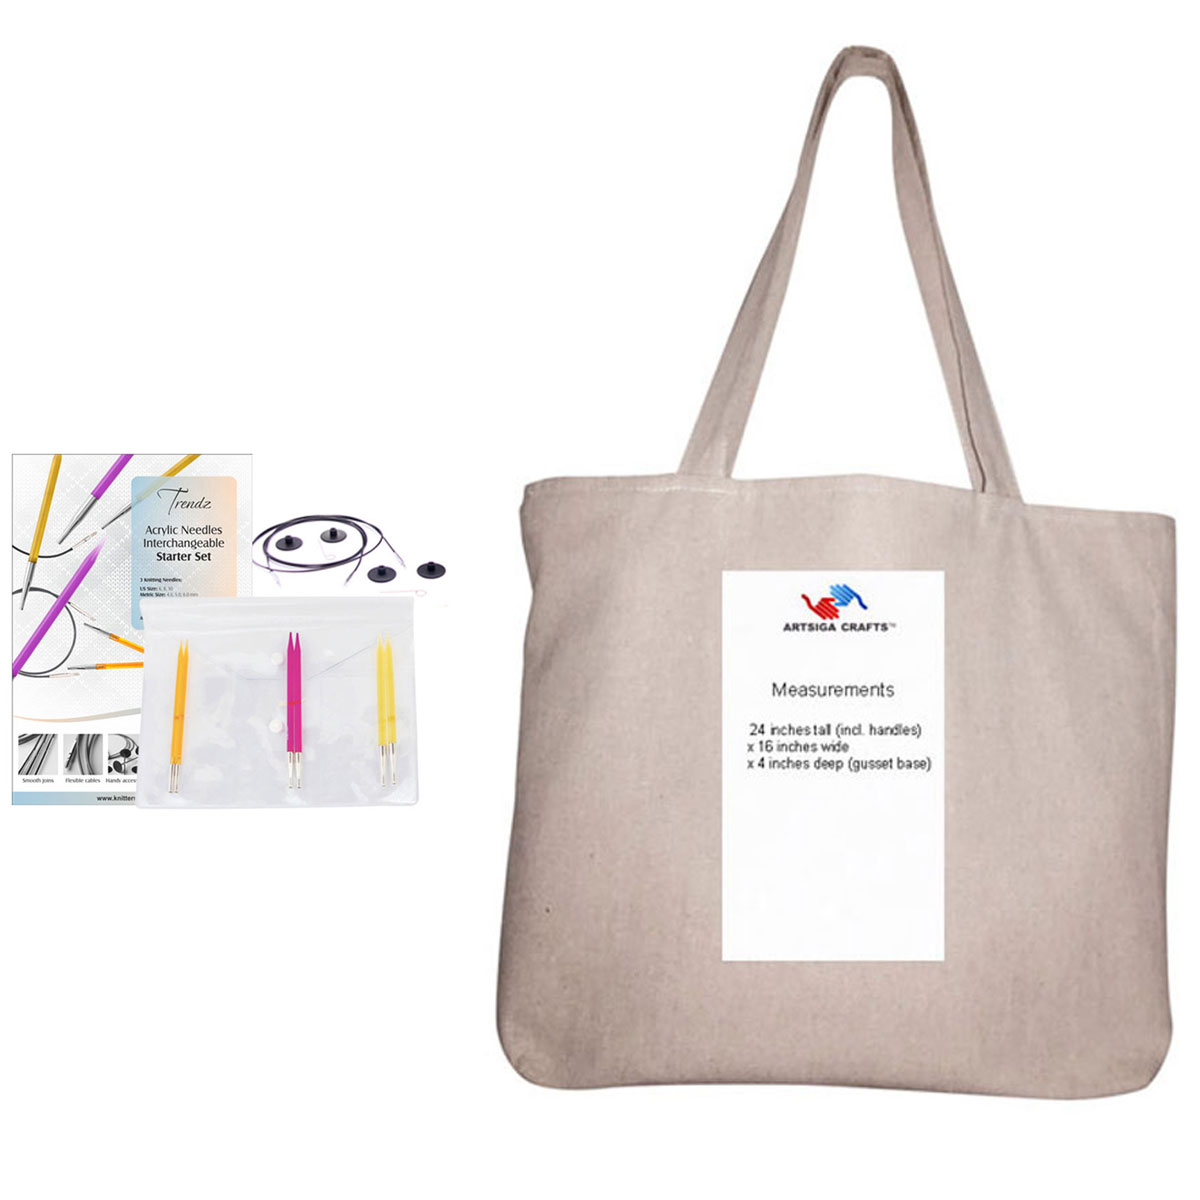 Knitter's Pride Trendz Interchangeable Knitting Needles Starter Set Bundle with 1 Artsiga Crafts Project Bag 700105